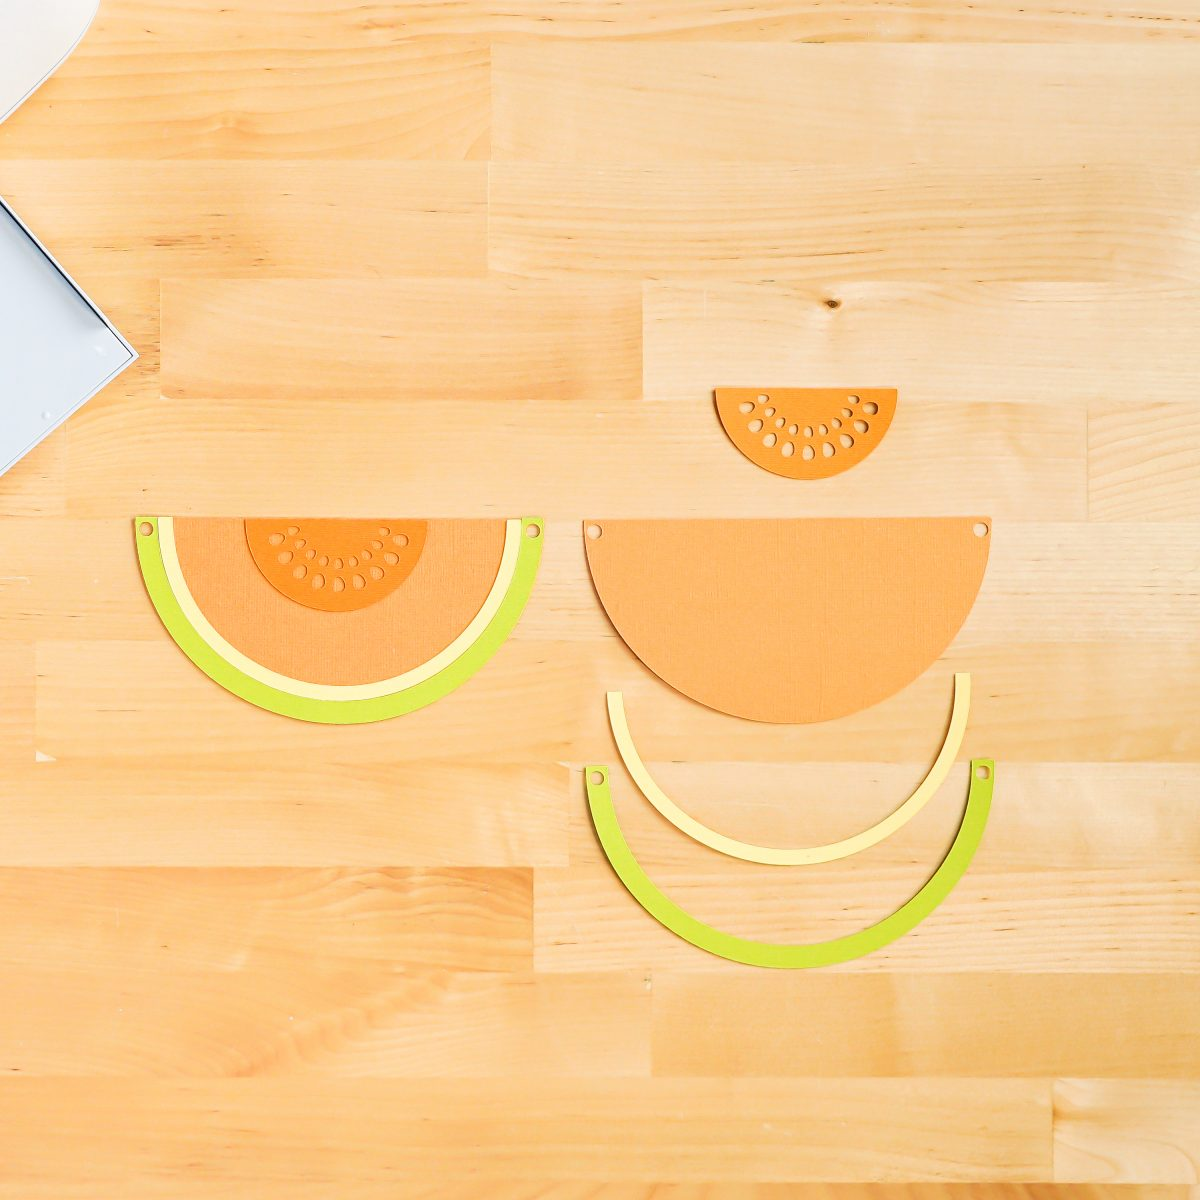 How to assemble the cantelope